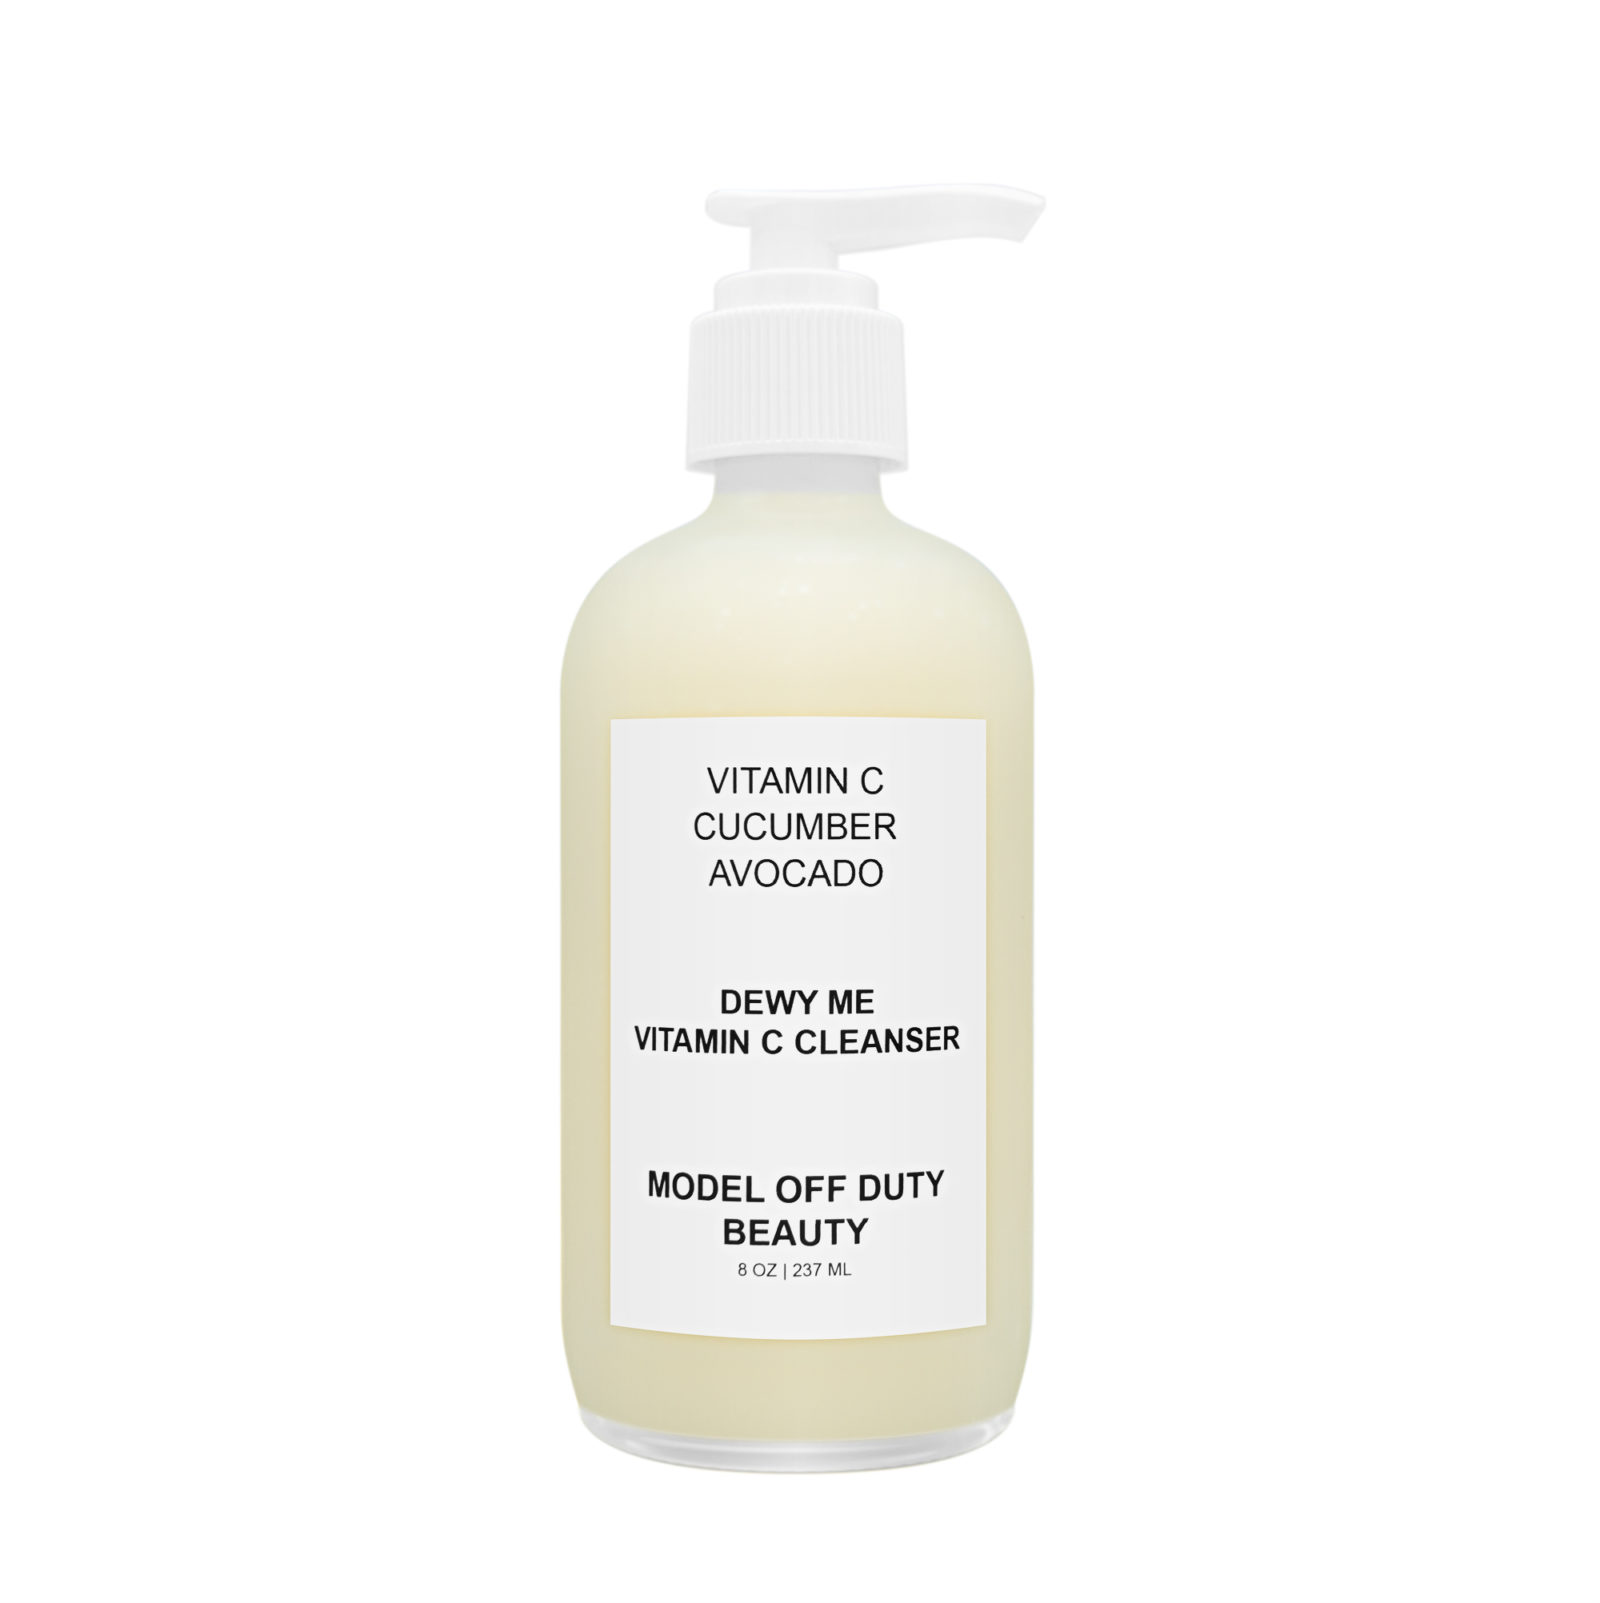 model off duty beauty vitamin c product for skin